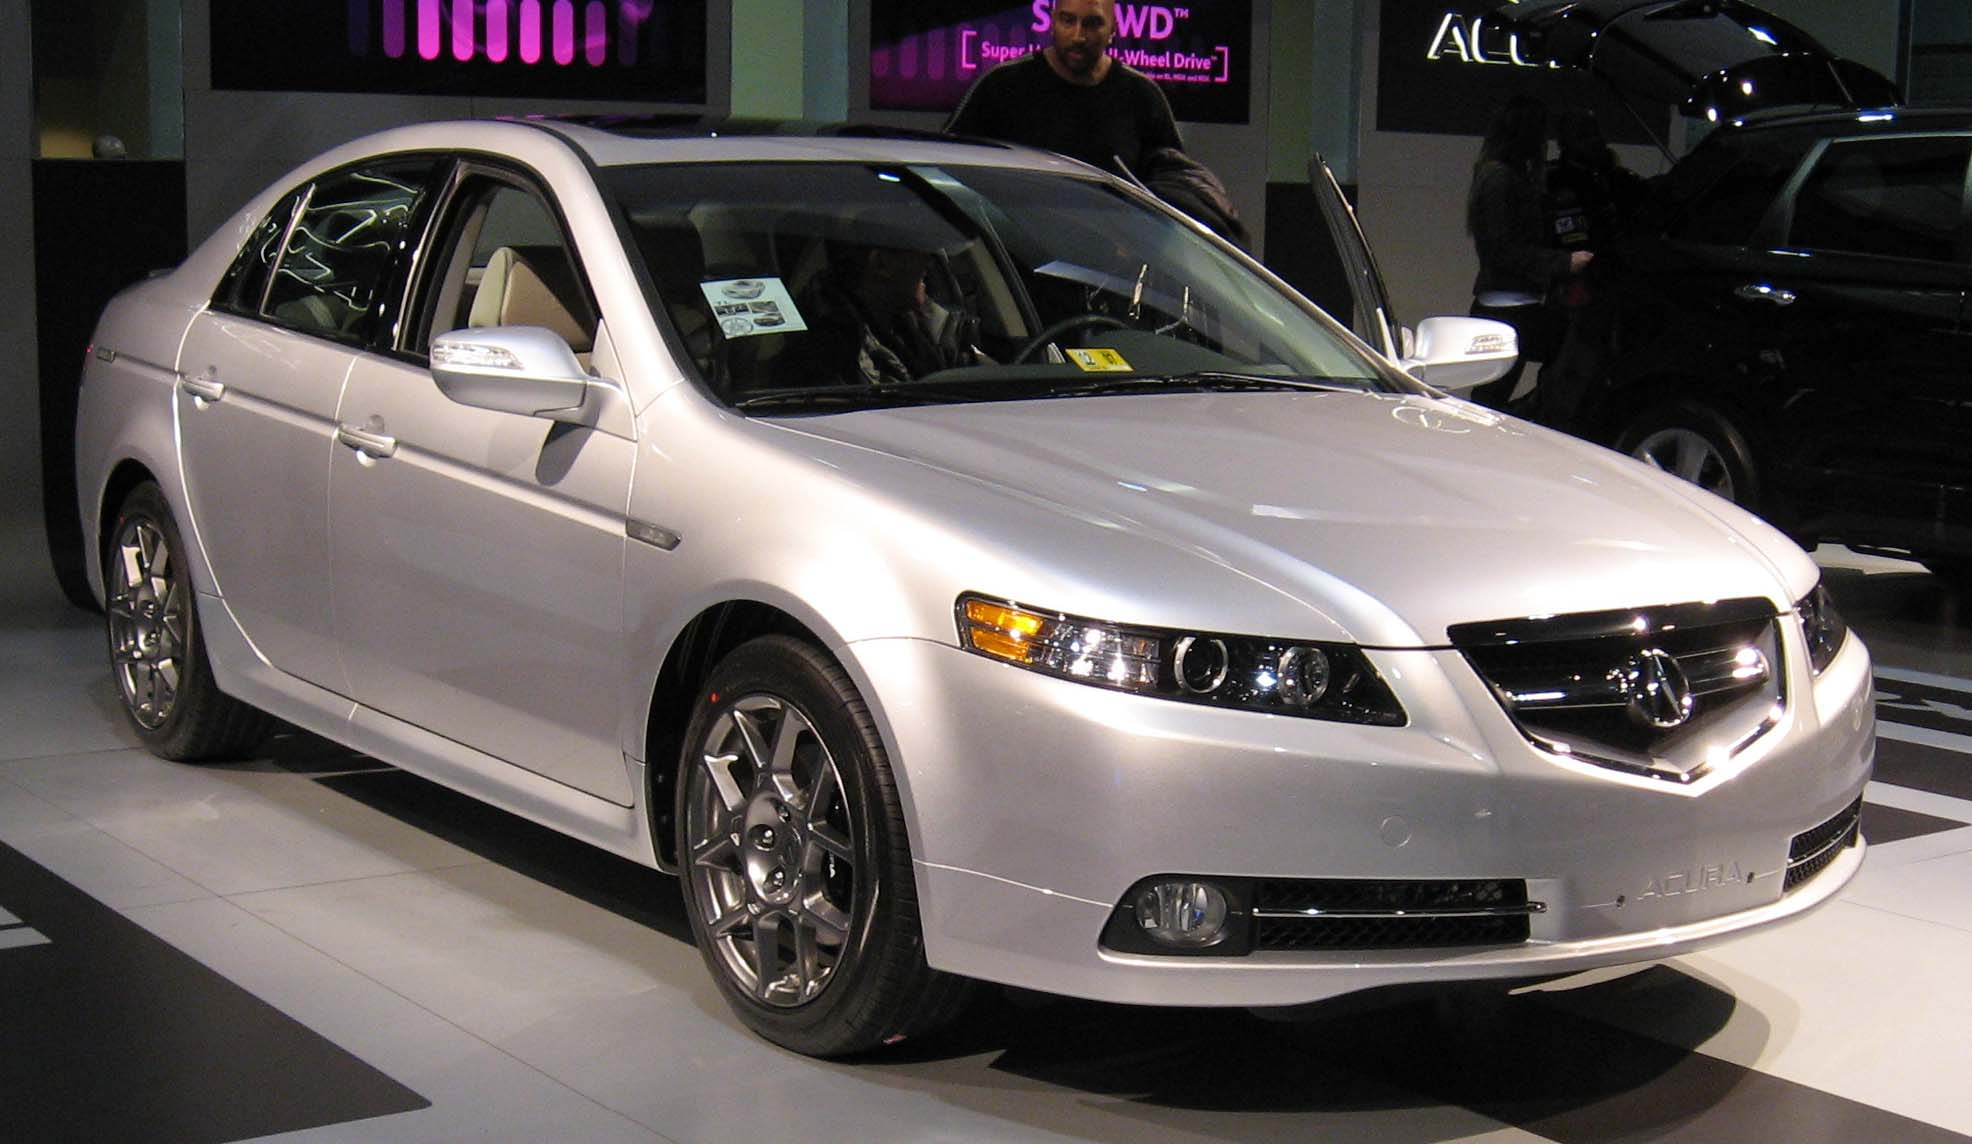 2007 Acura Tl Type S Navigation >> 2019 Acura TL Type S | Car Photos Catalog 2019